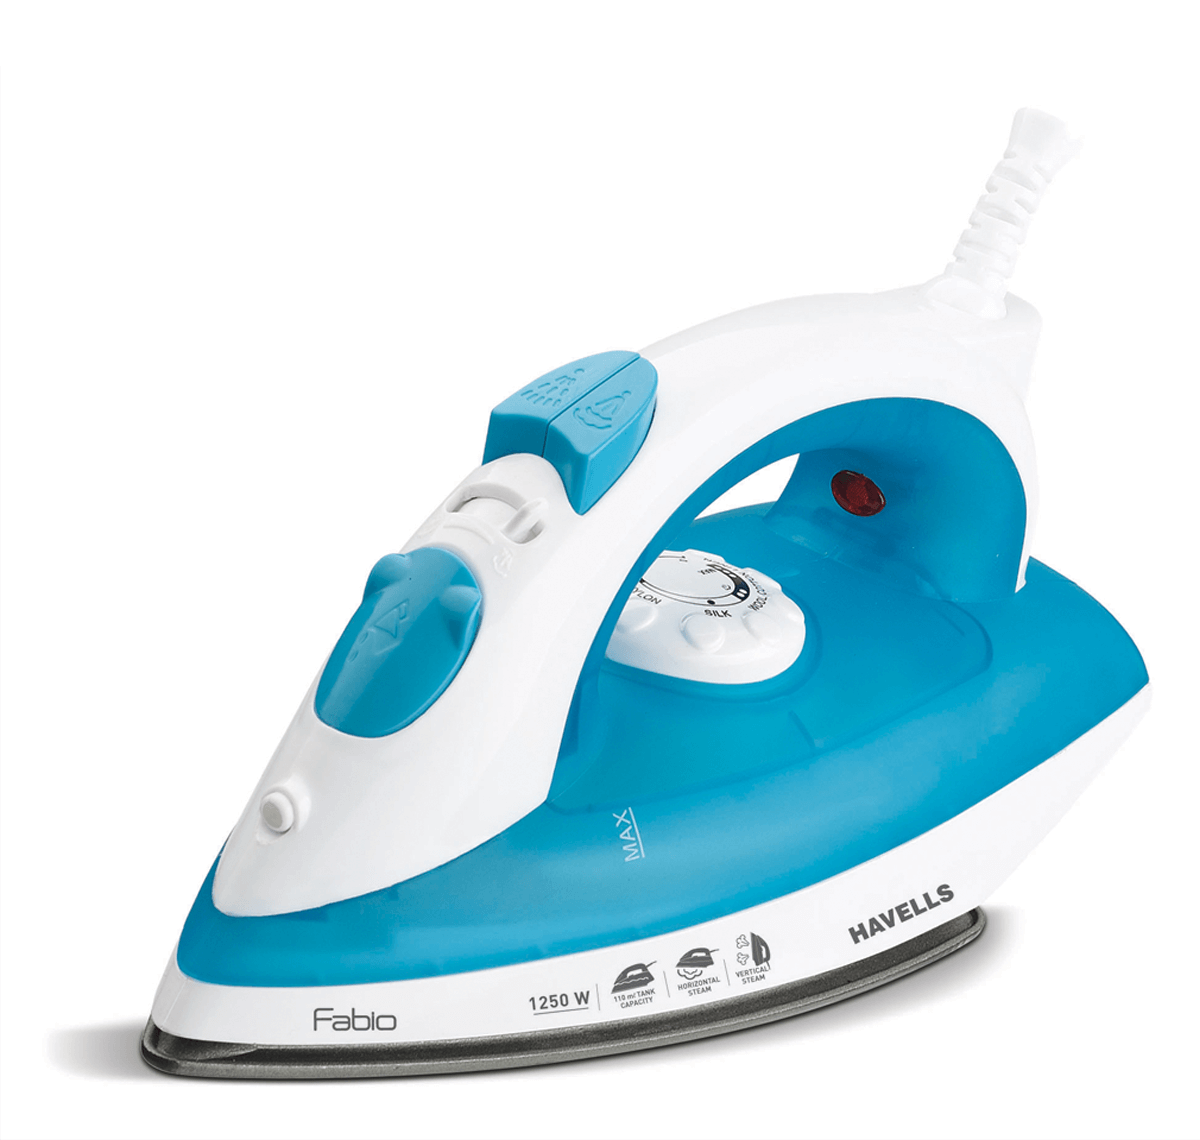 STEAM IRON FABIO